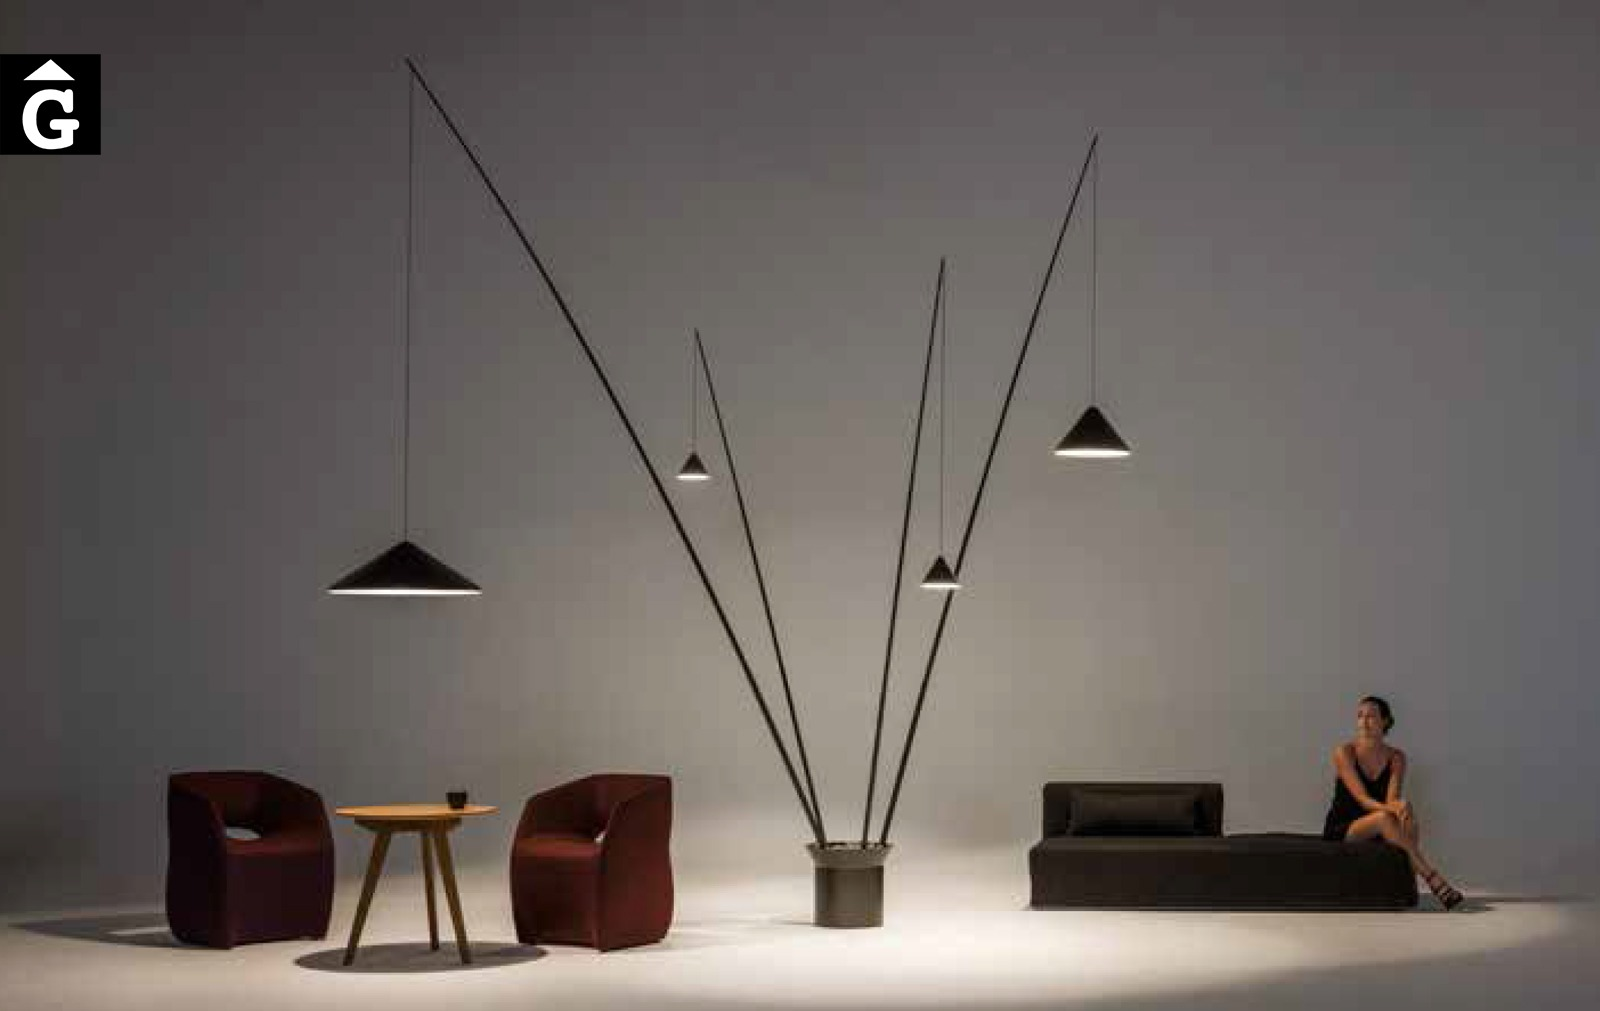 000 74 0 North Vibia by mobles Gifreu